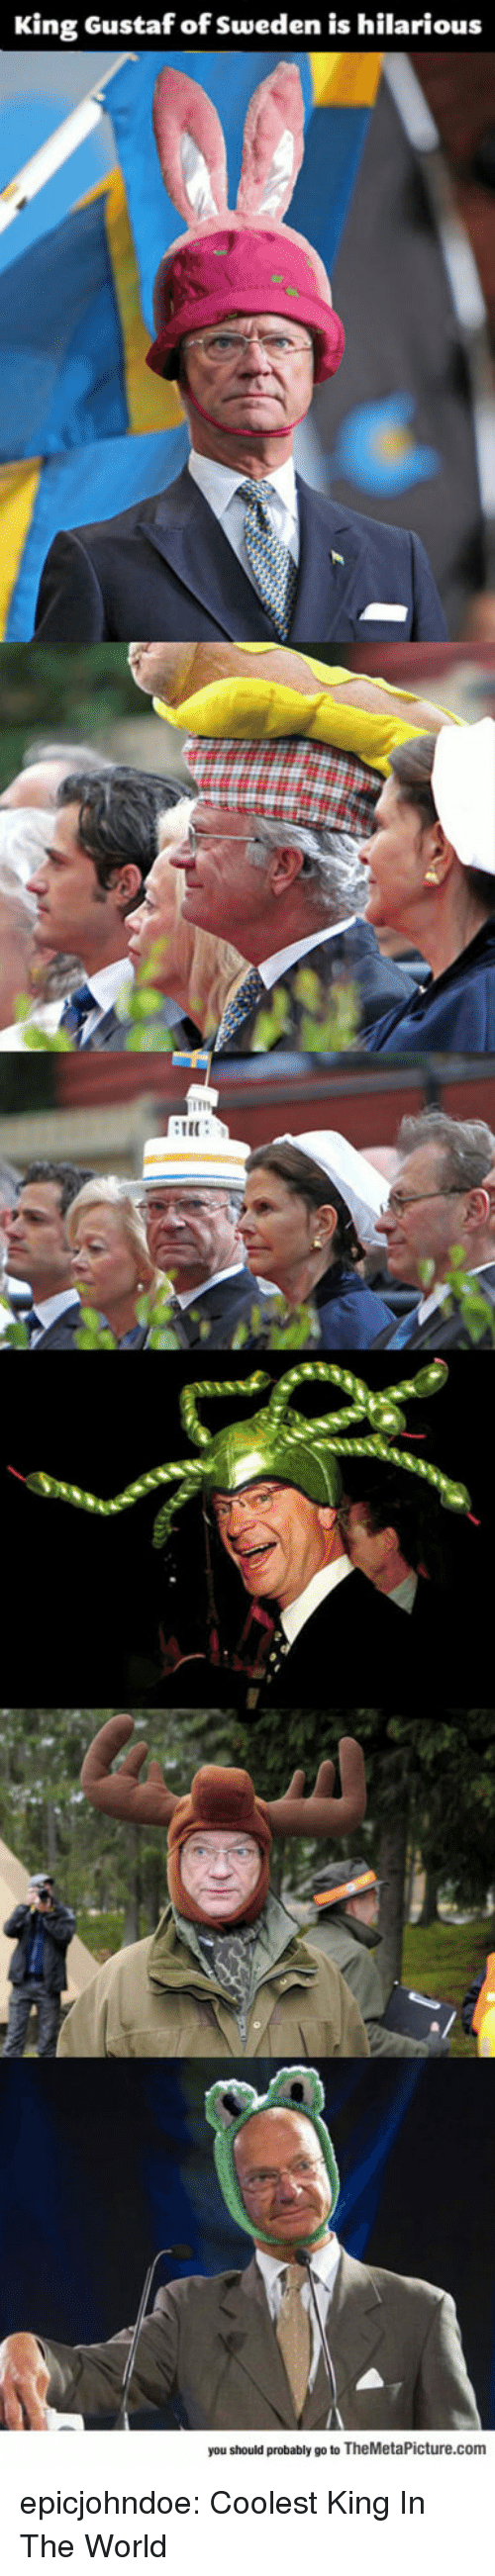 Is Hilarious: King Gustaf of Sweden is hilarious  im  IE  you should probably go to TheMetaPicture.com epicjohndoe:  Coolest King In The World